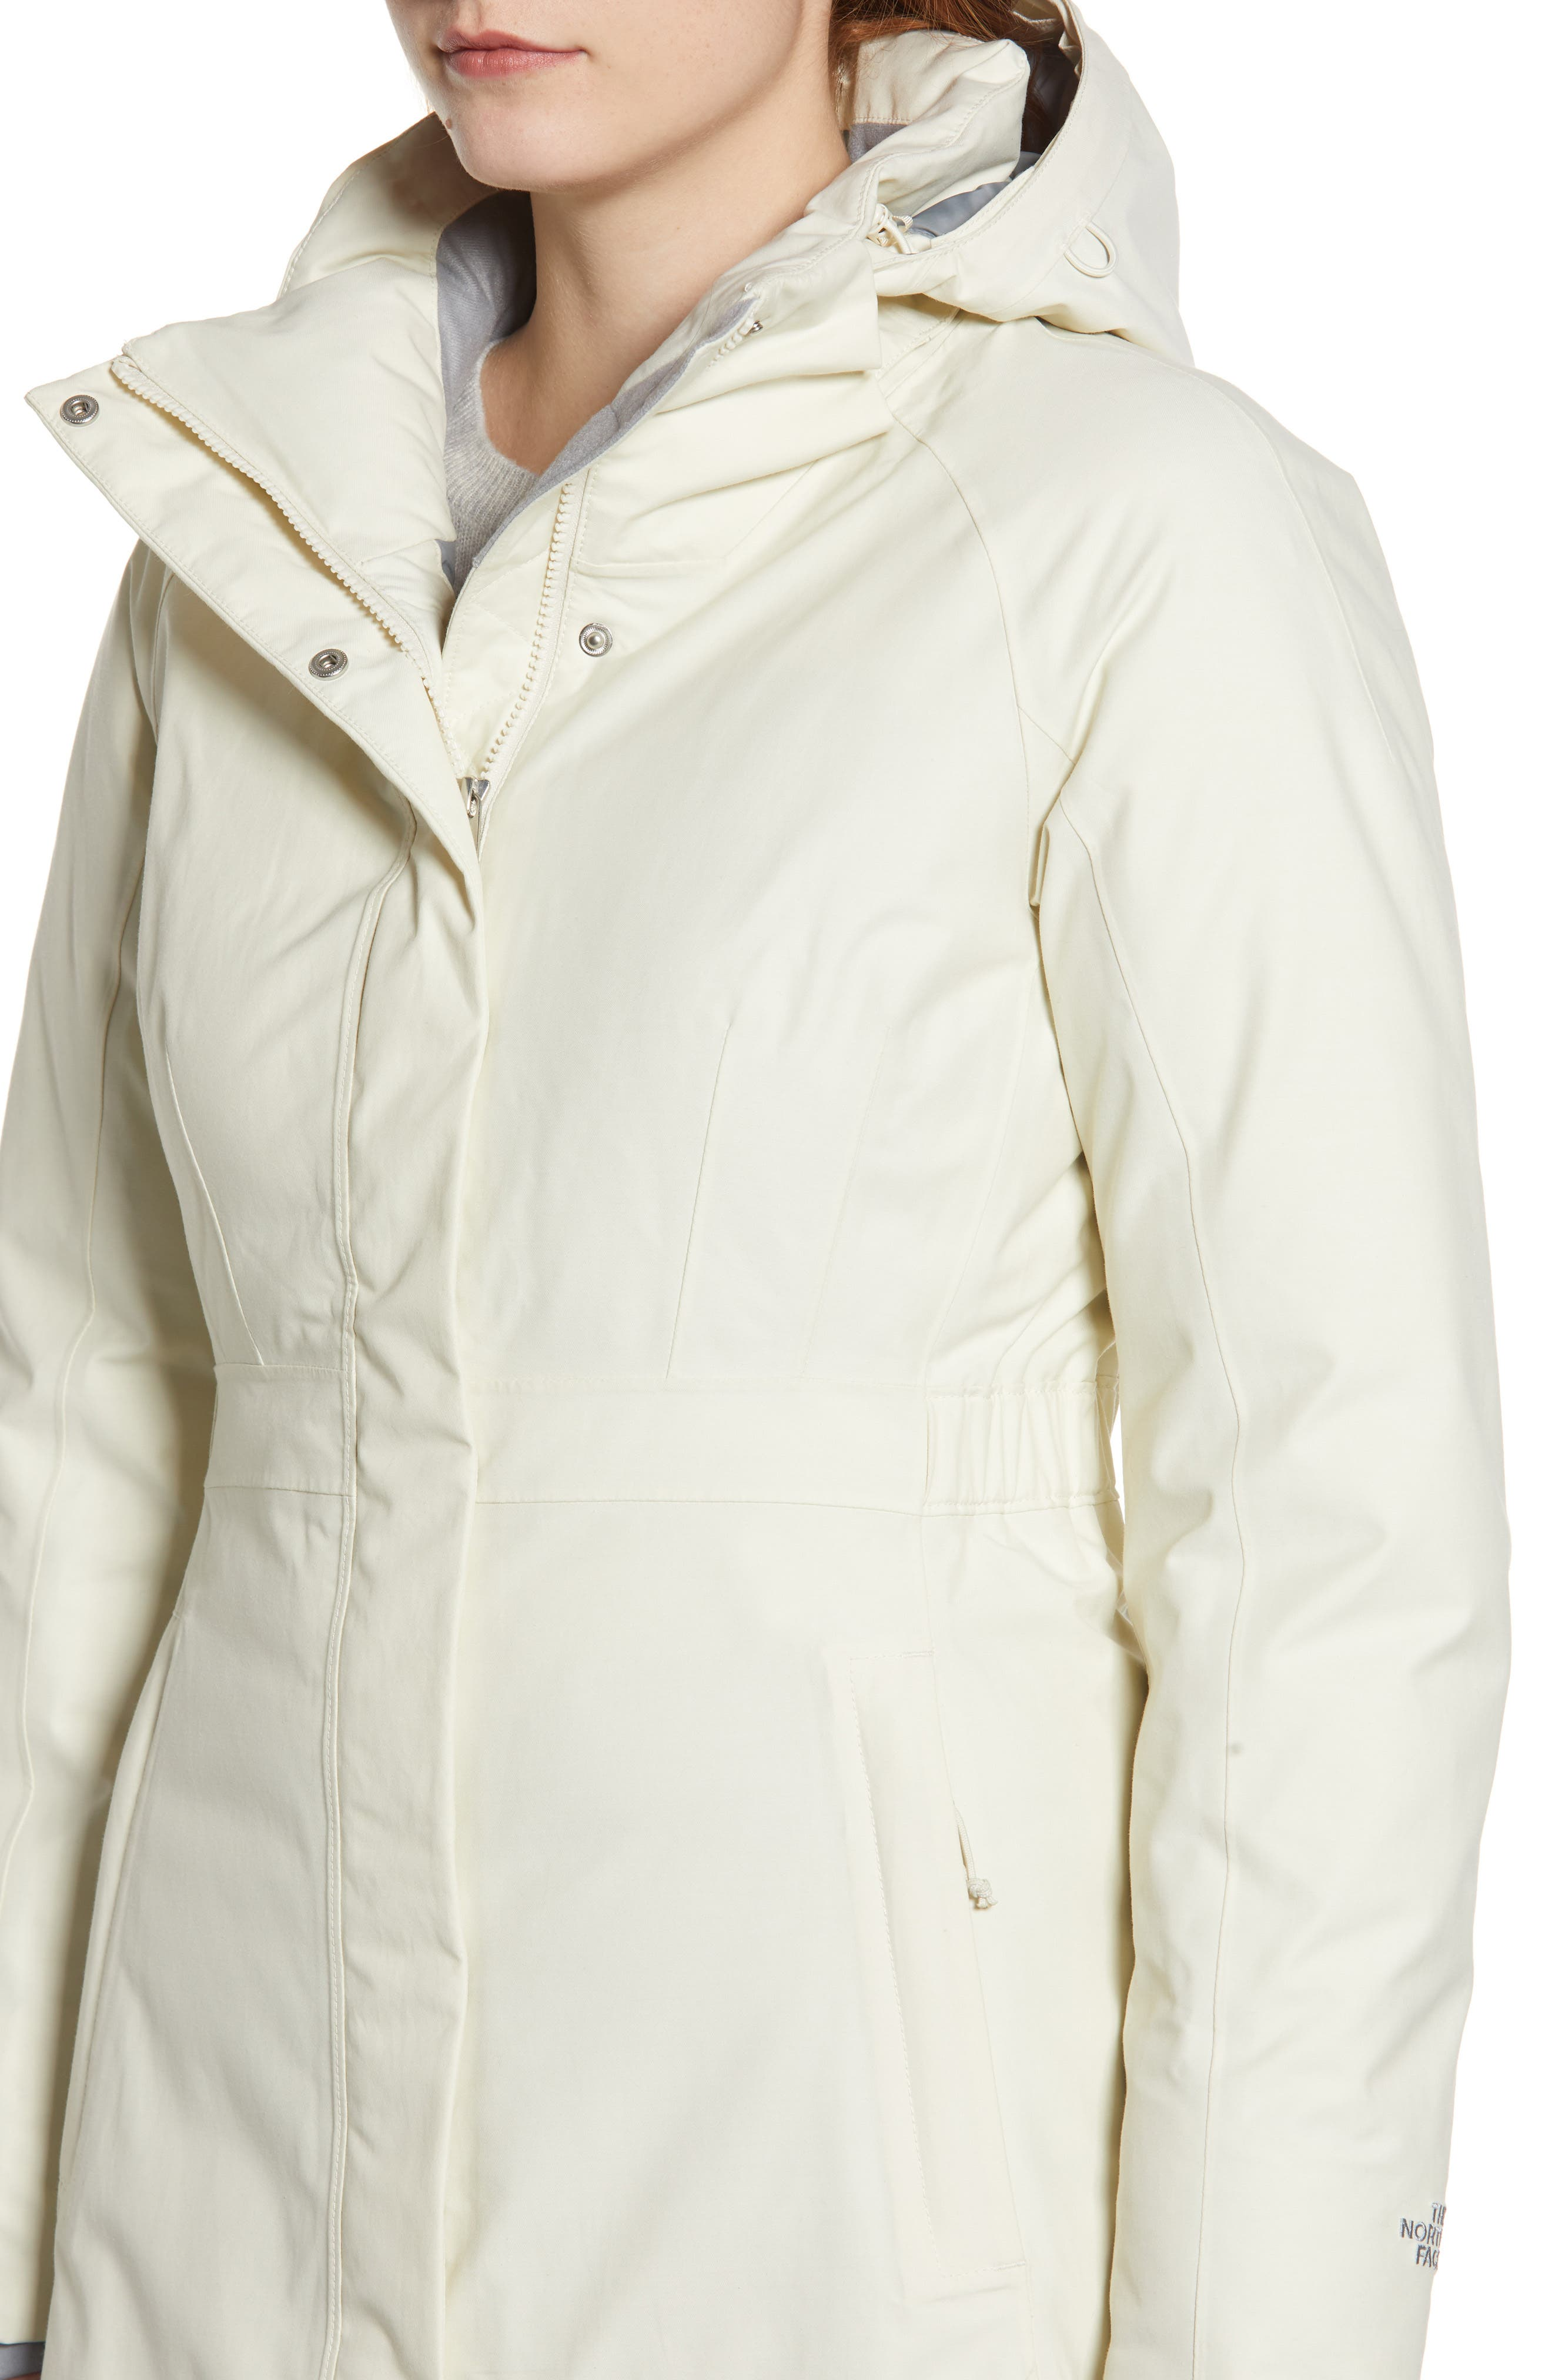 Arctic II Waterproof 550 Fill Power Down Parka with Faux Fur Trim,                             Alternate thumbnail 4, color,                             VINTAGE WHITE